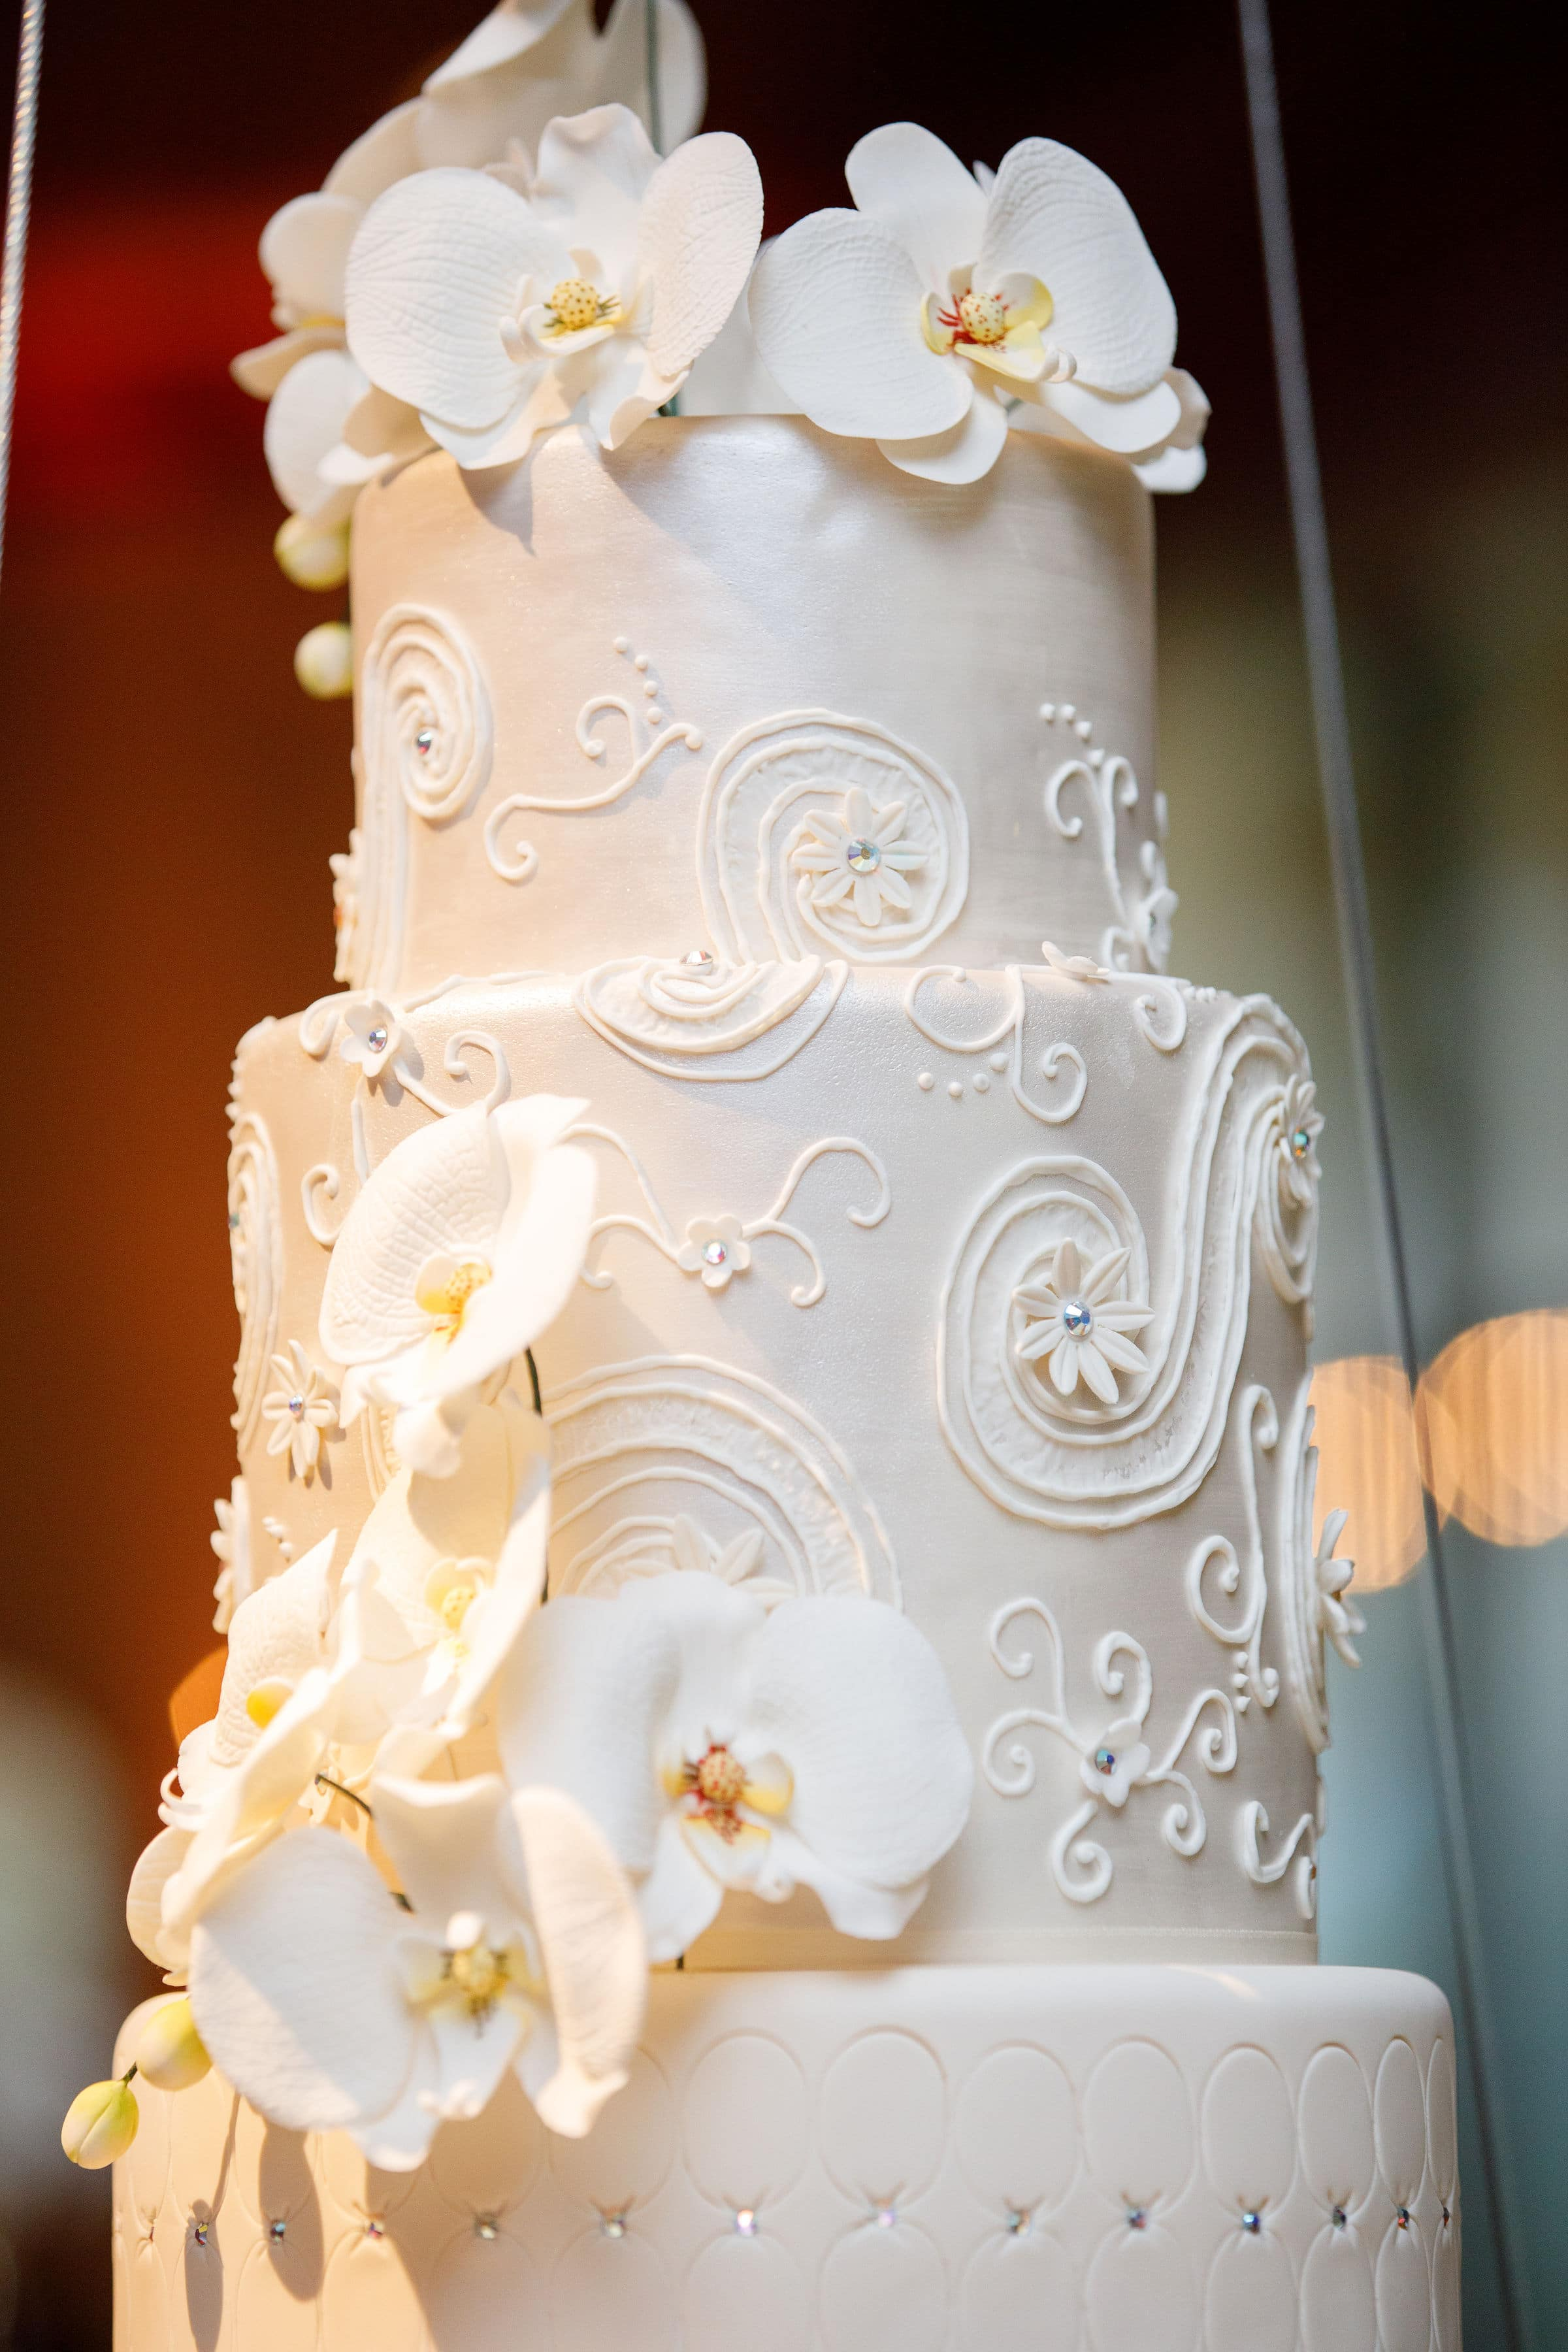 Zoomed in Detail of White Wedding Cake with Swavorski Crystal